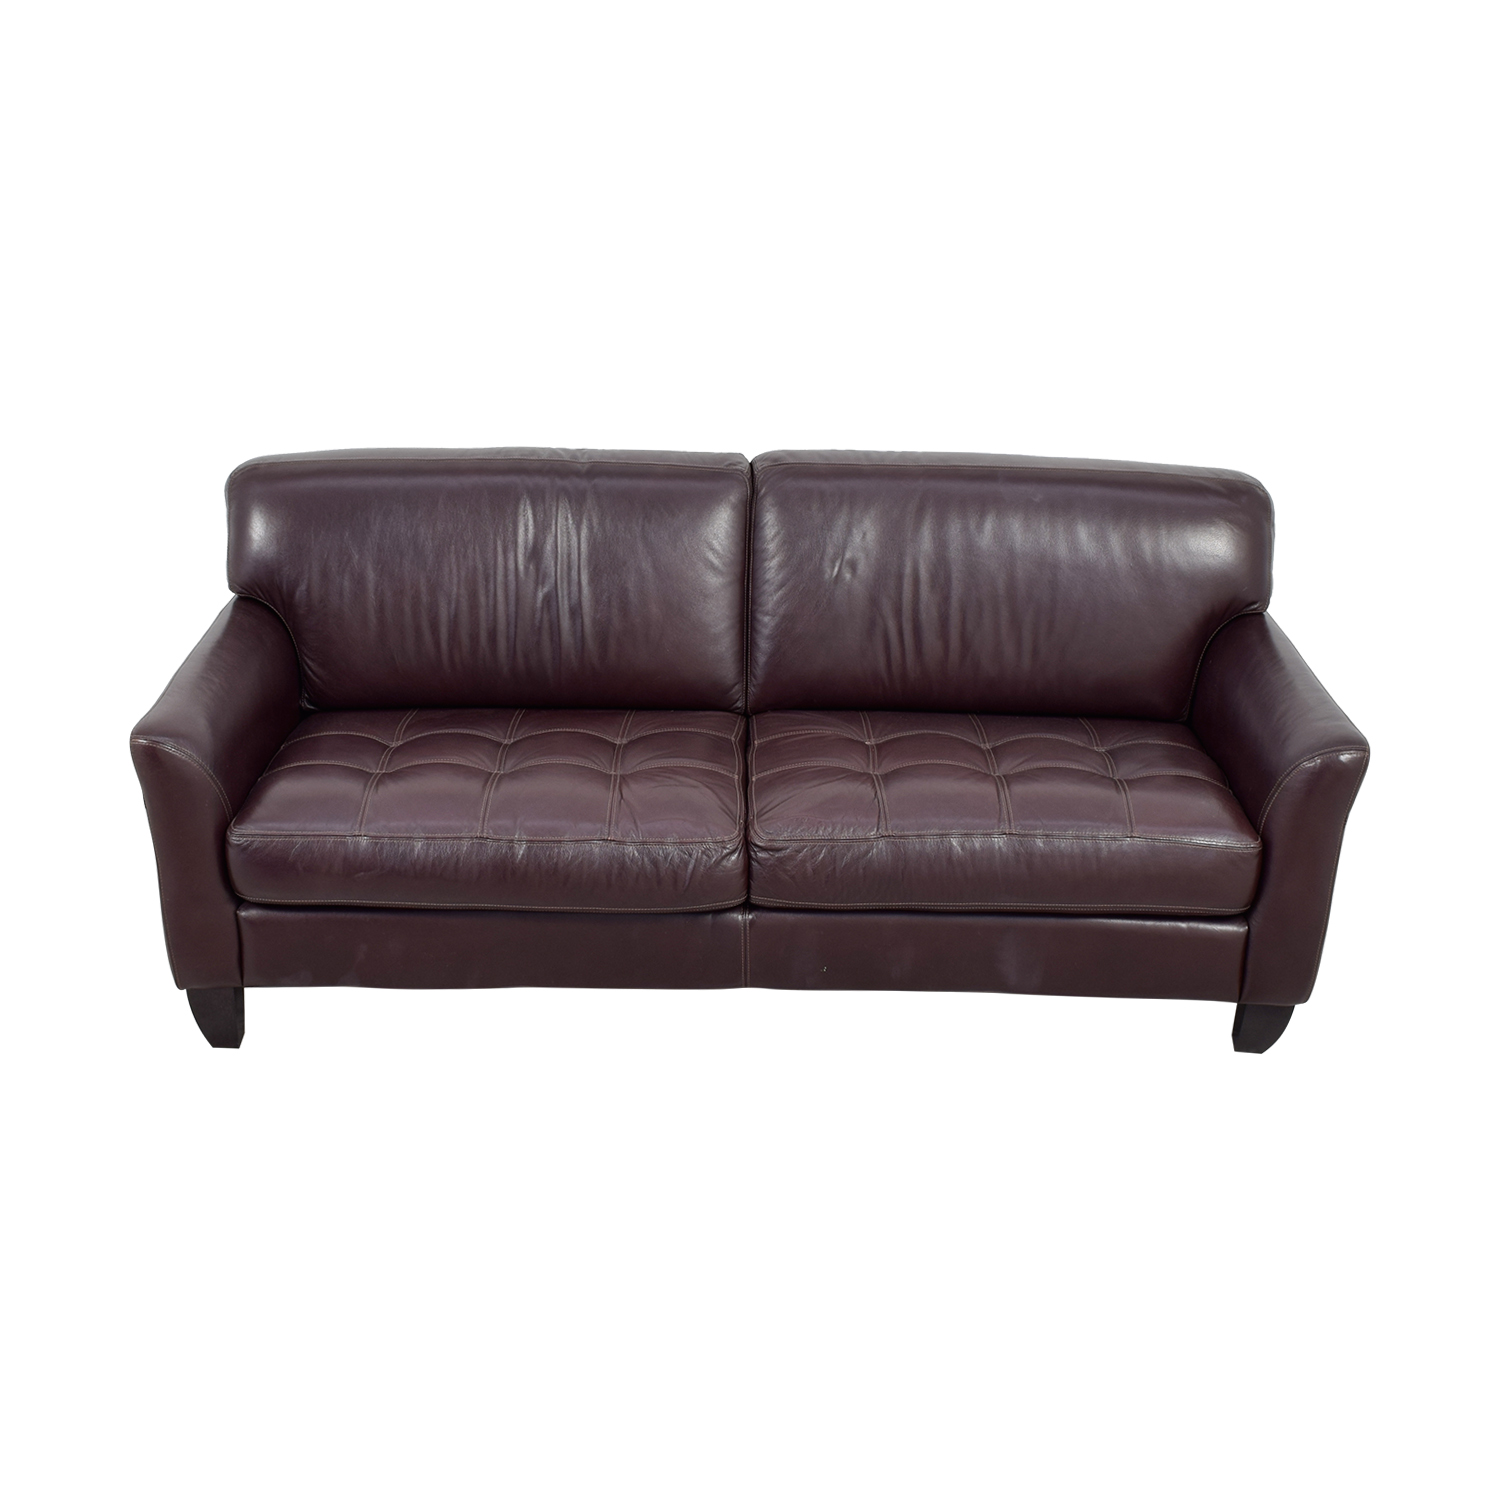 Macy's Signature Macy's Signature Brown Leather Tufted Sofa on sale